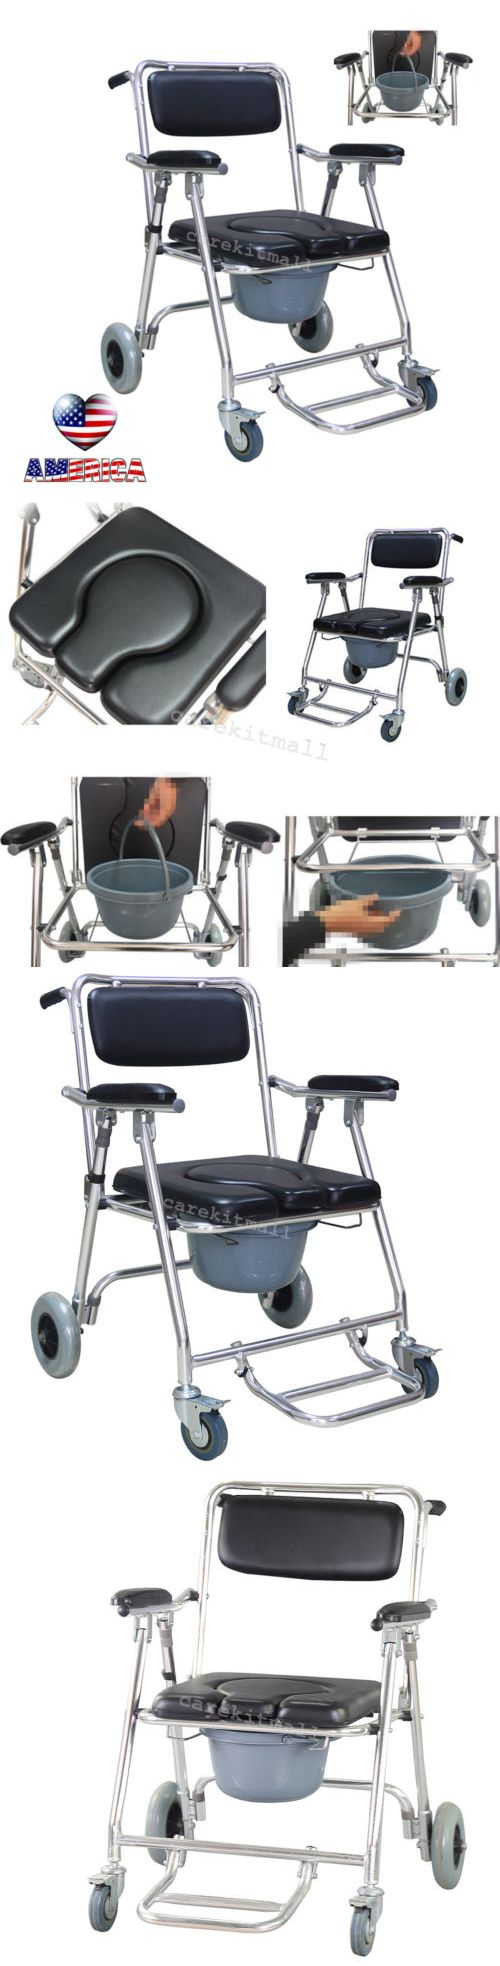 Portable commode folding bedside handicap adult toilet potty chair - Toilet Frames And Commodes Aluminum Commode Wheelchair Shower Bathroom Detachable Swing Cushioned Armrests